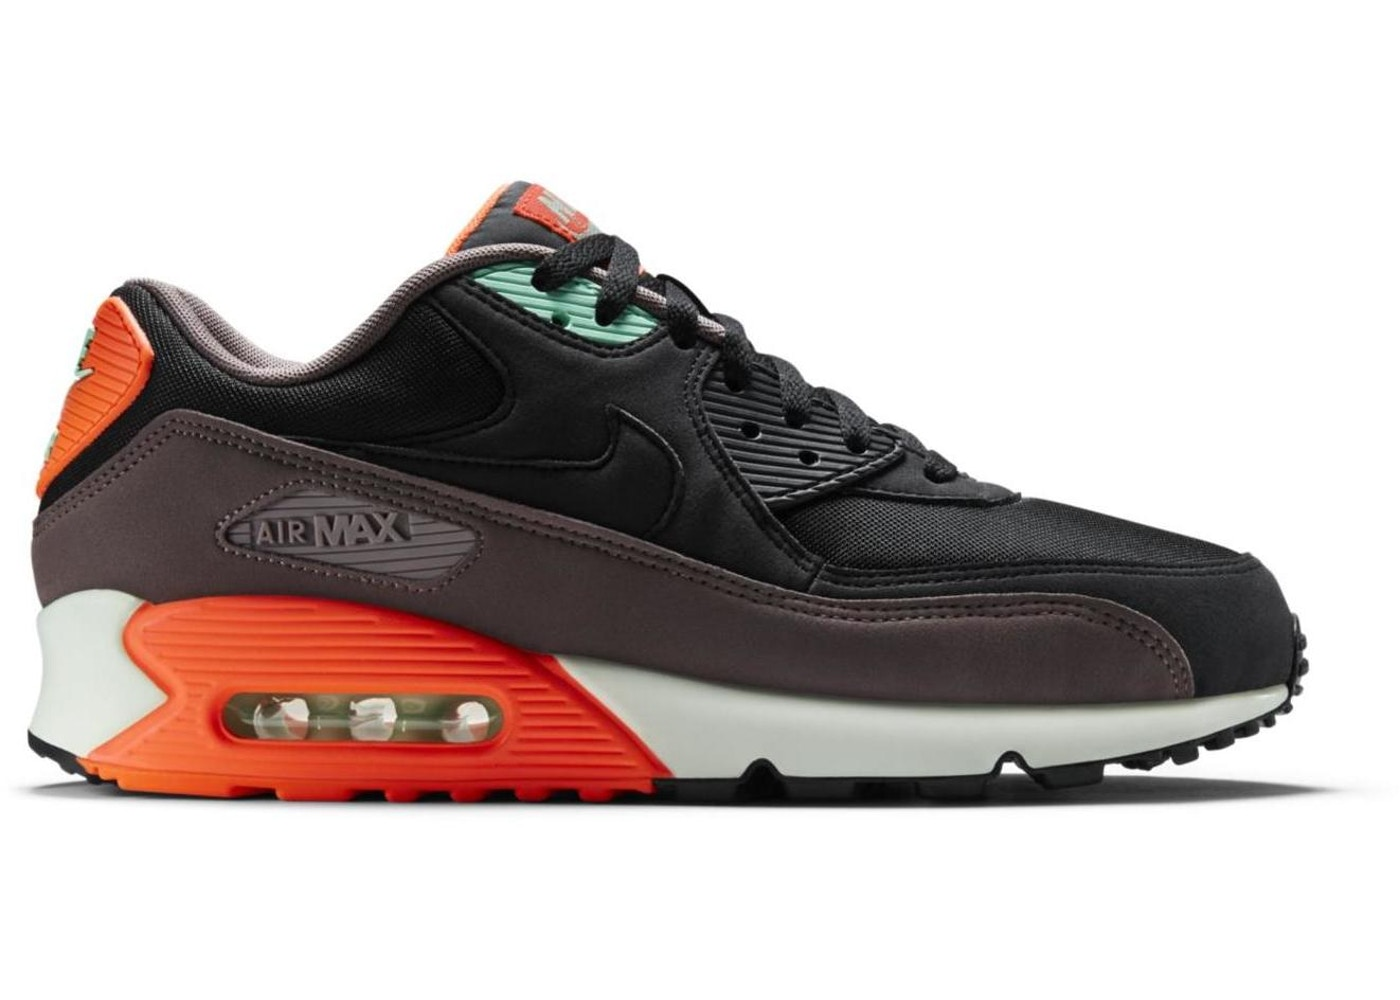 premium selection 9ed31 b5b0d Sell. or Ask. Size  8.5. View All Bids. Air Max 90 Hyper Crimson